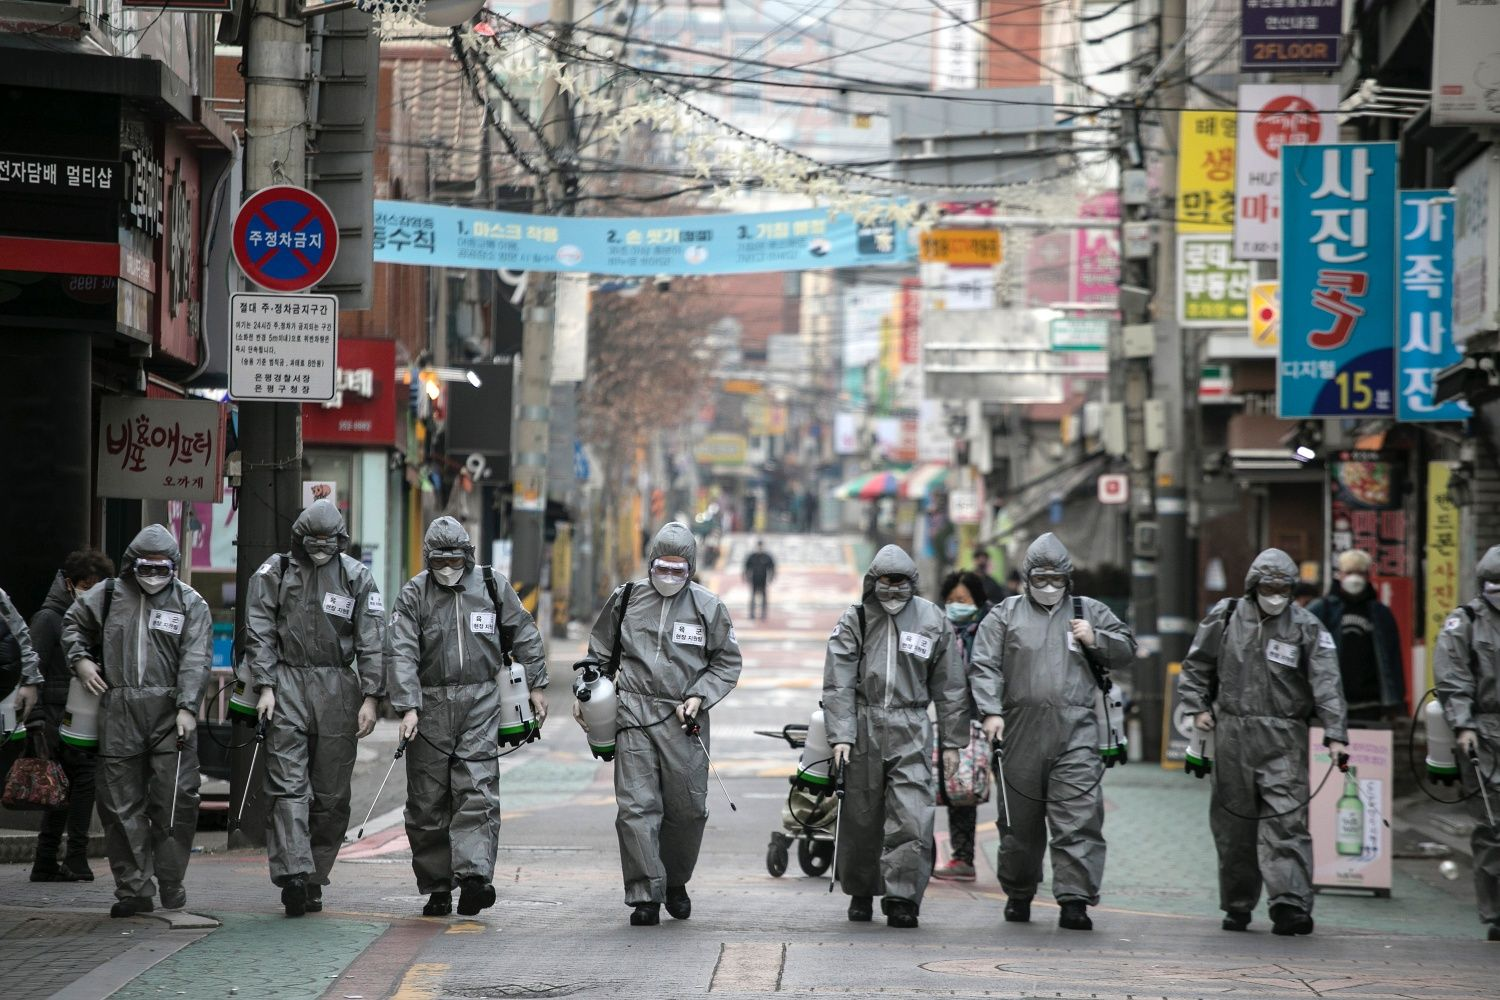 """SEOUL, SOUTH KOREA - MARCH 04: South Korean soldiers, in protective gear, disinfect the Eunpyeong district against the coronavirus (COVID-19) on March 04, 2020 in Seoul, South Korea. The South Korean government has raised the coronavirus alert to the """"highest level"""" as confirmed case numbers continue to rise across the country. According to the Korea Centers for Disease Control and Prevention, 516 new cases were reported on Wednesday, with the death toll rising to 33. The total number of infections in the n"""